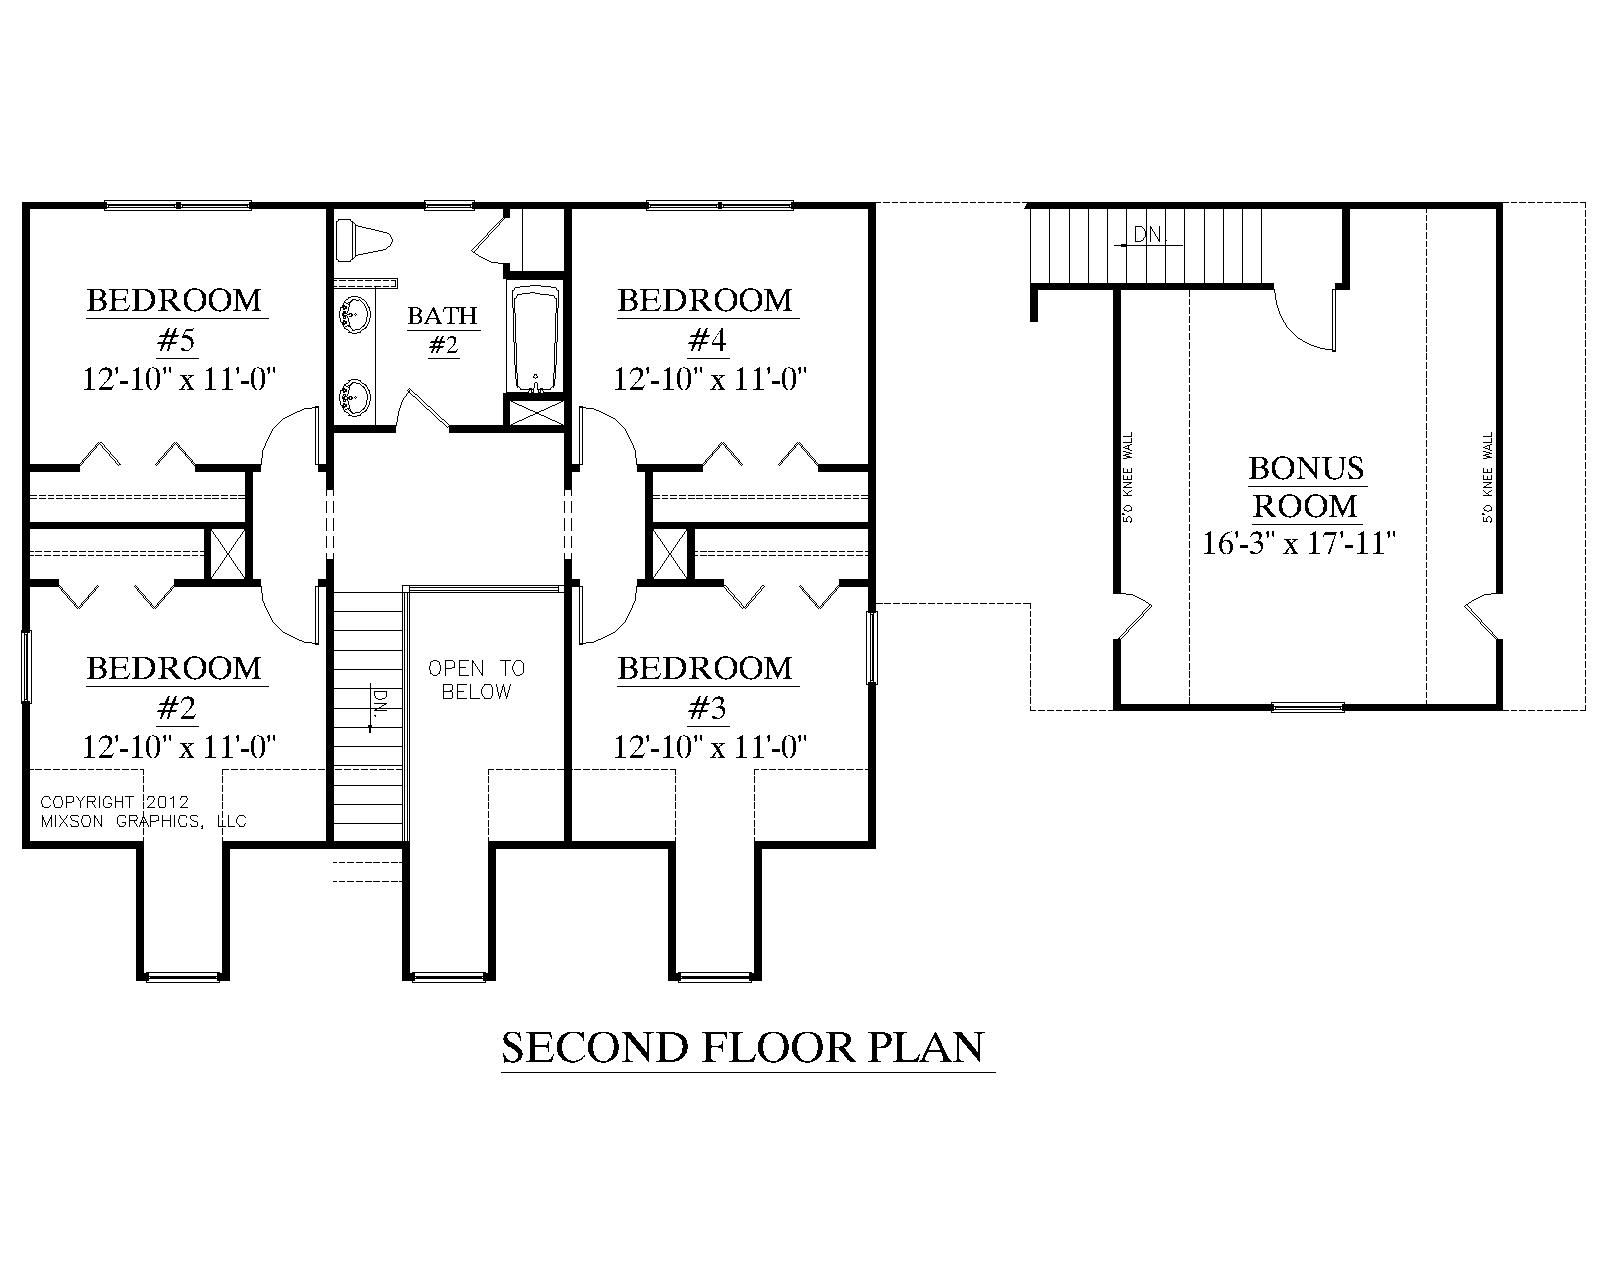 Pin By Southern Heritage House Plans On 1 1 2 Story House Plans Two Story House Plans Floor Plans House Plans